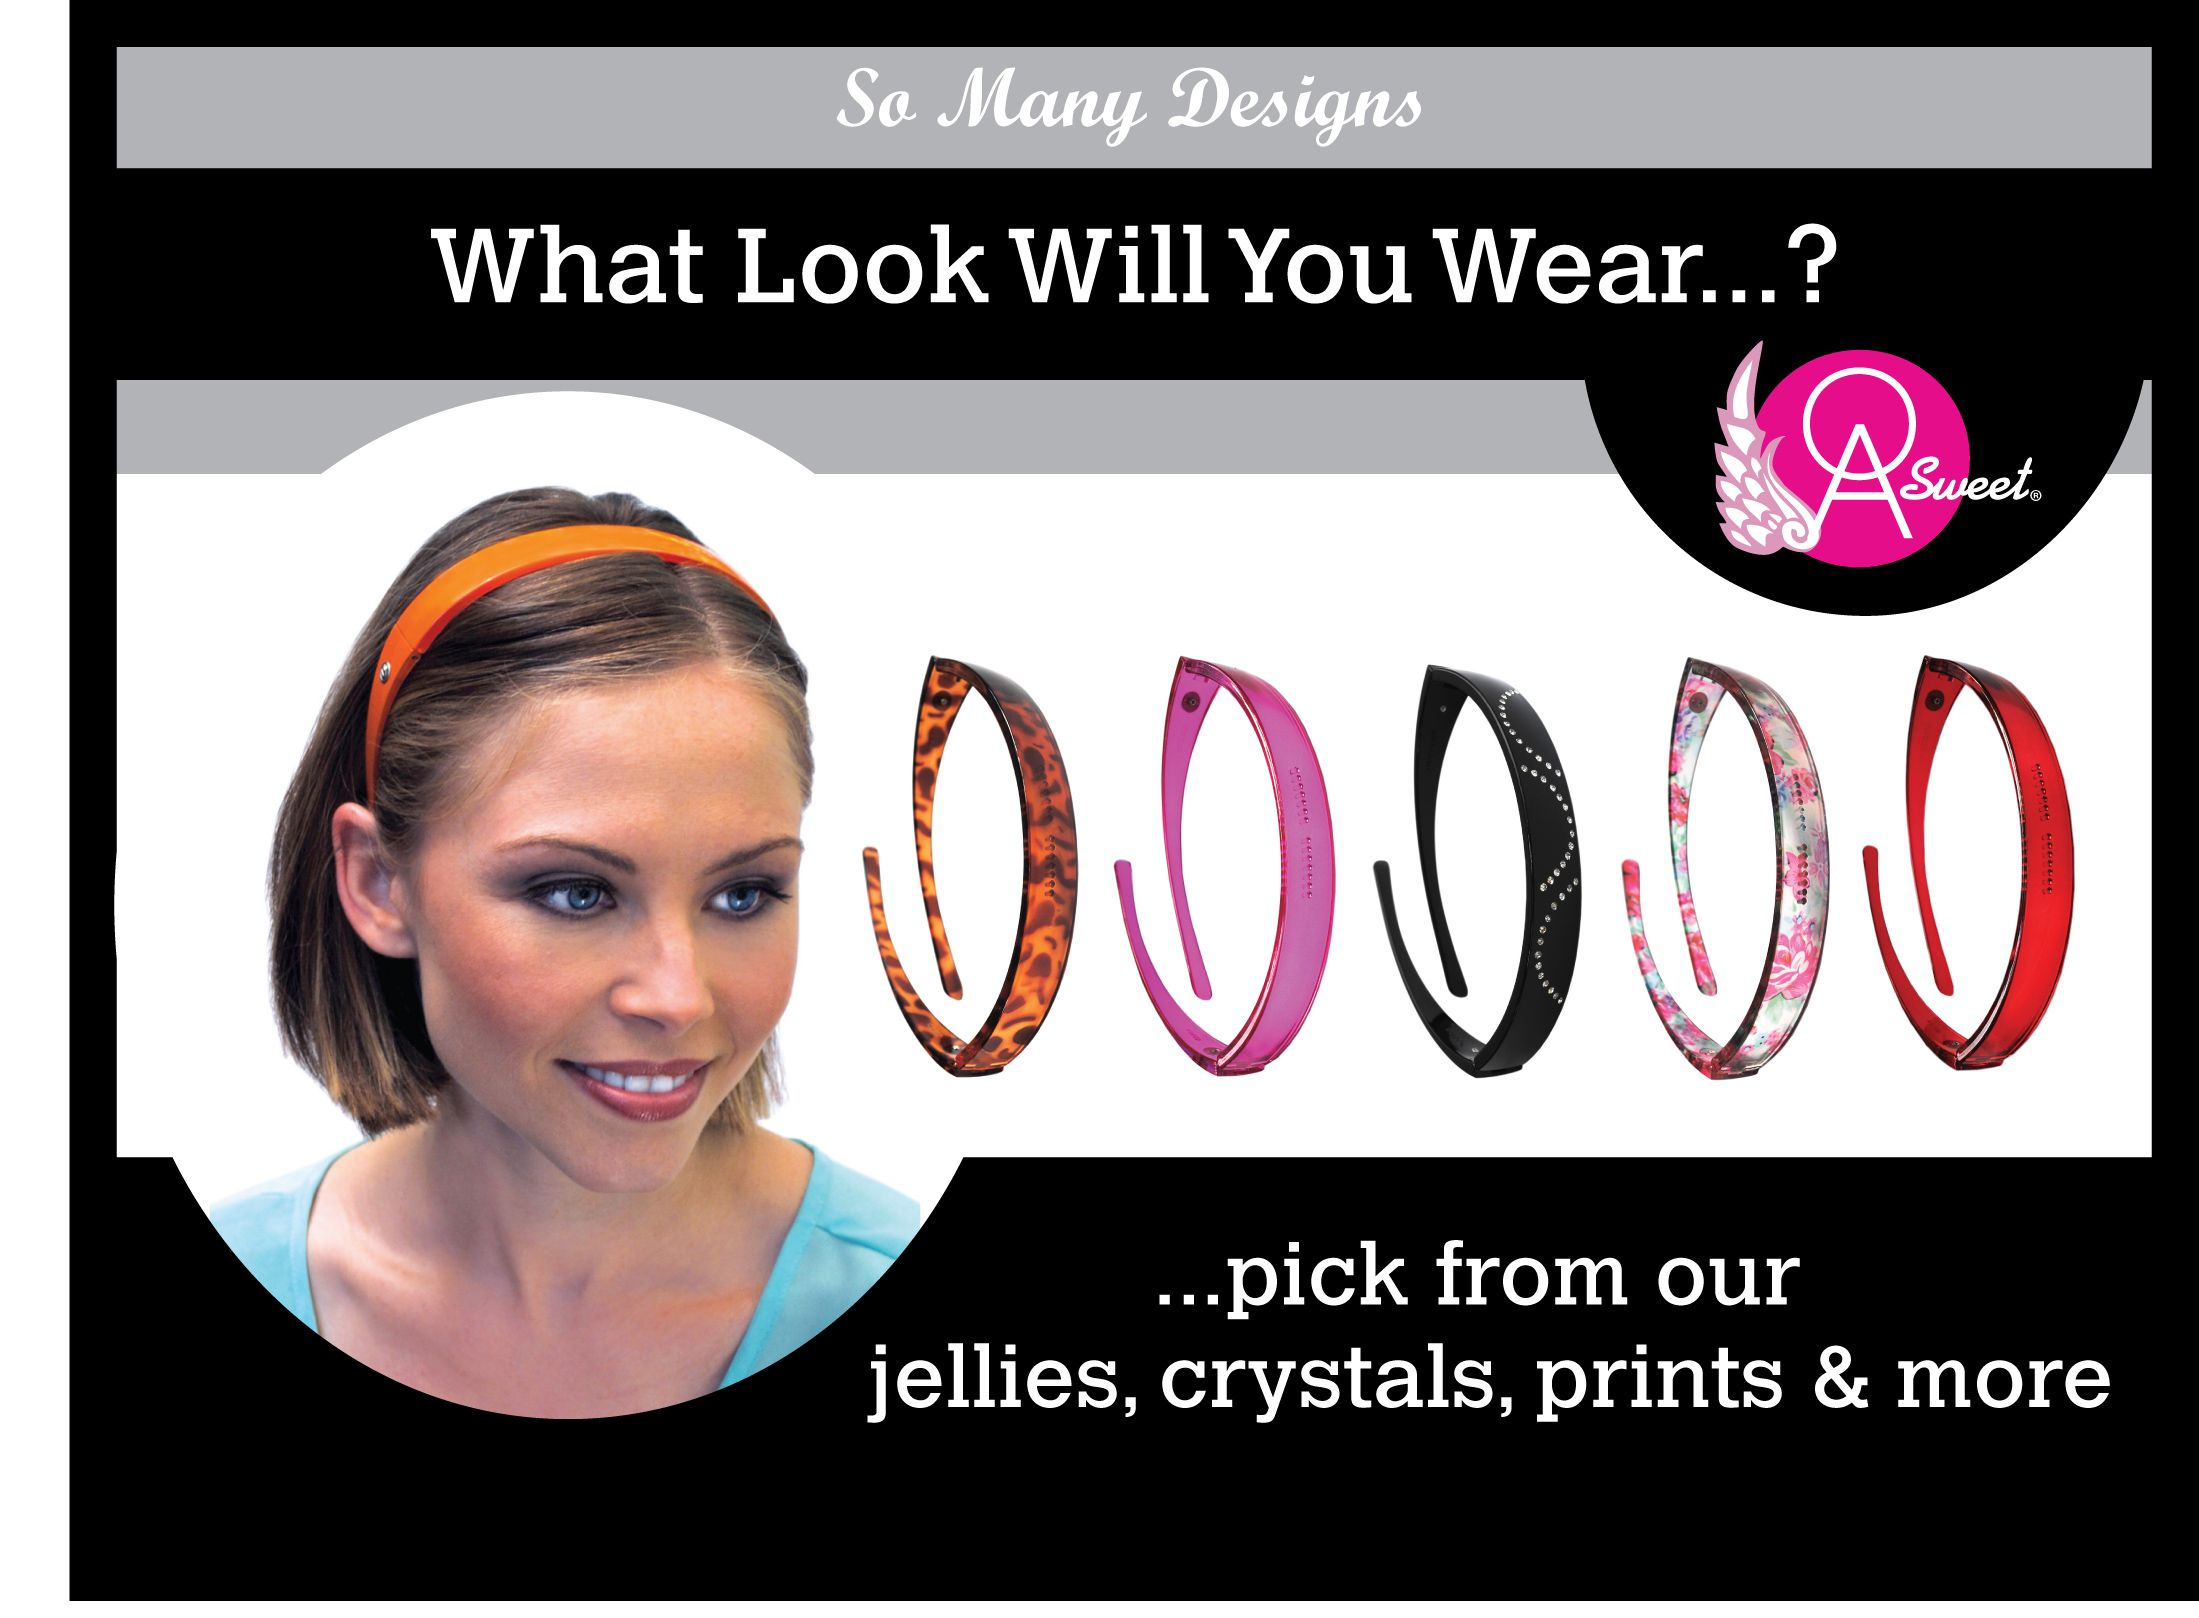 OA SWEET HEADBANDS: Our folding band collection eliminates pressure behind the ears for superior comfort & switchable tops let you change your designs.